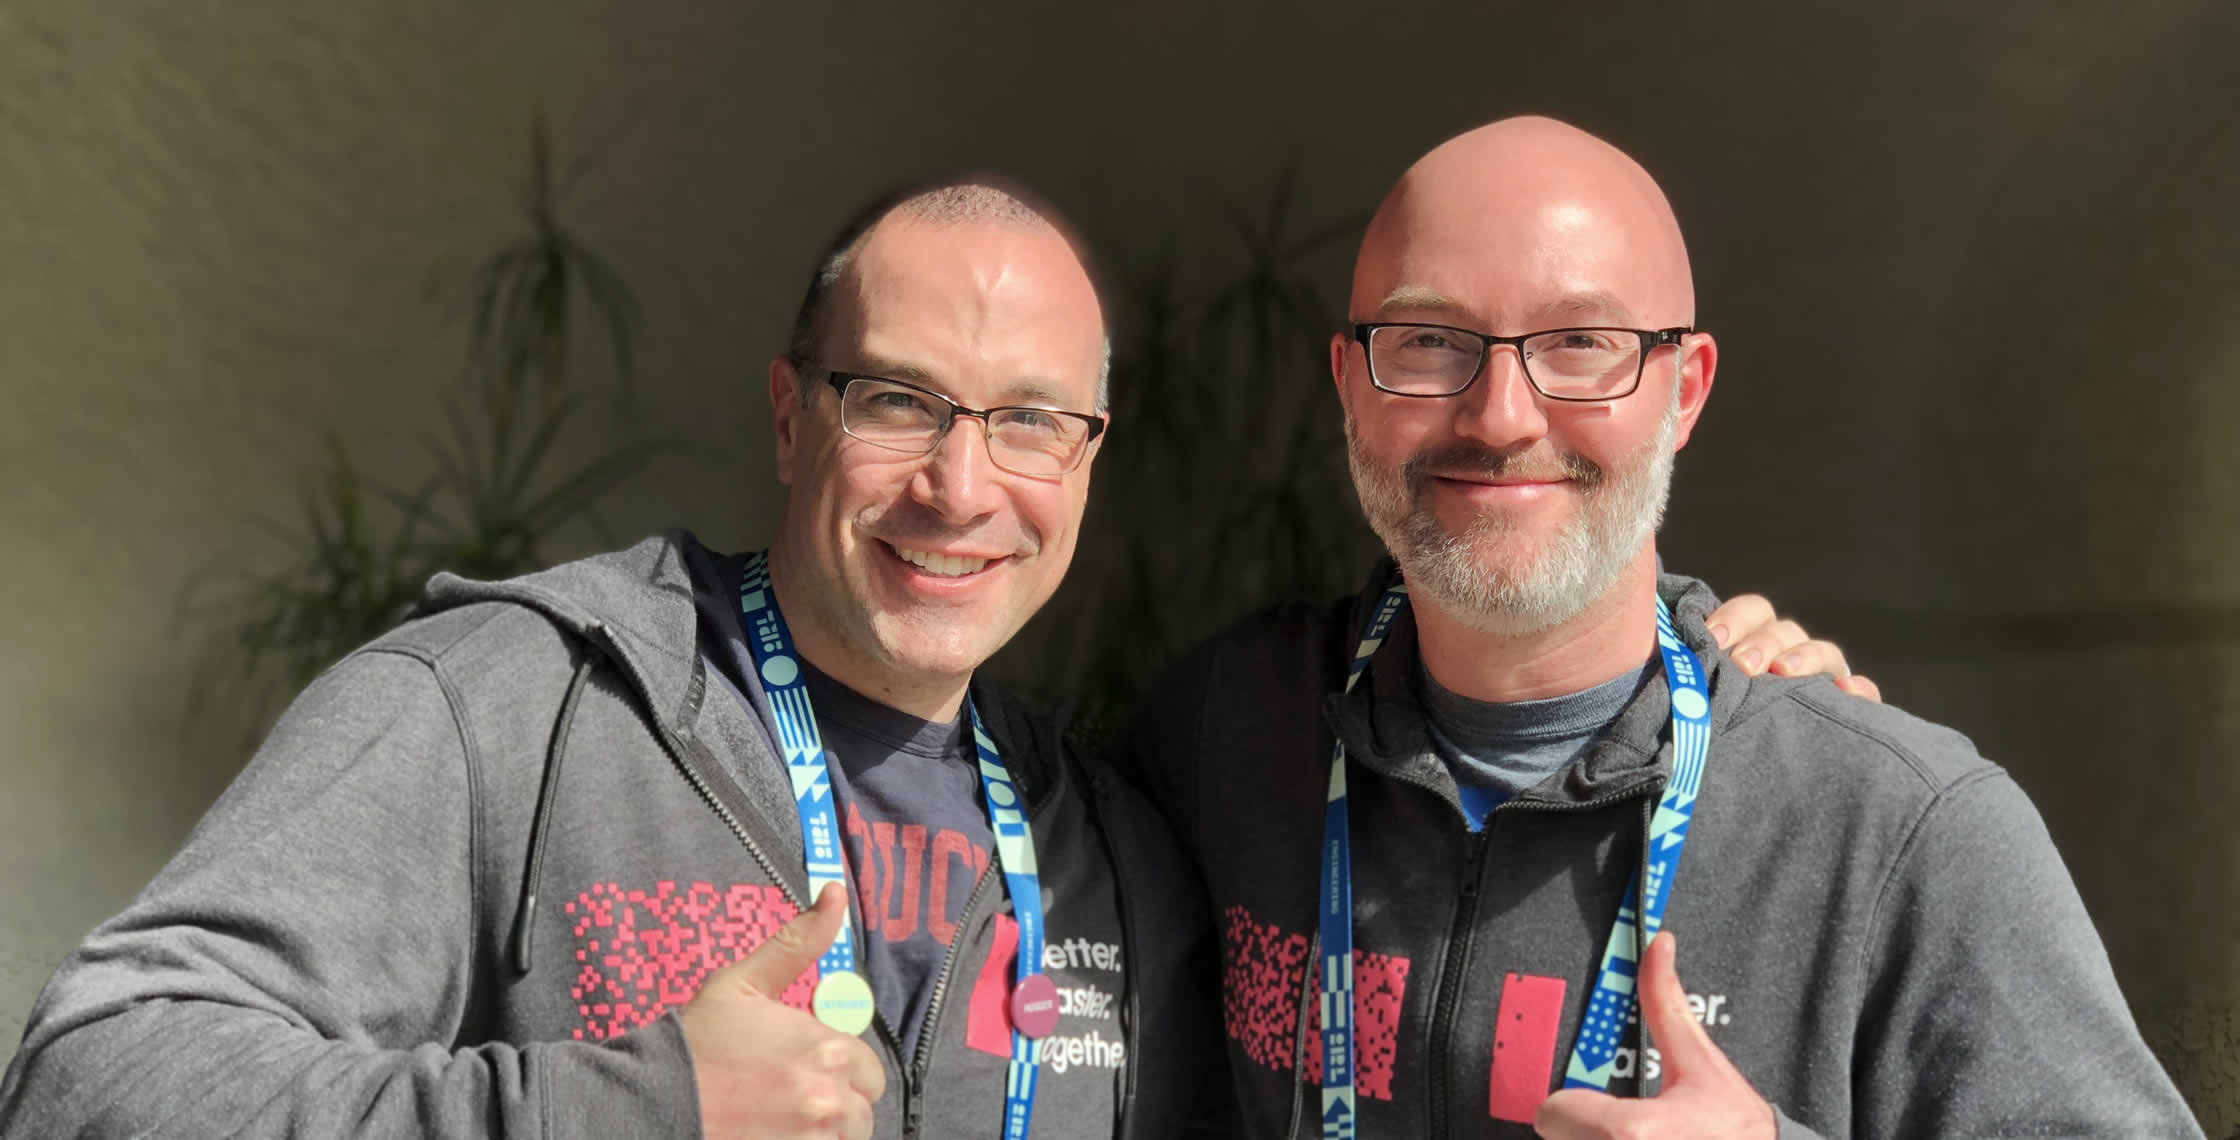 Ben Nadel at InVision In Real Life (IRL) 2019 (Phoenix, AZ) with: Josh Barber